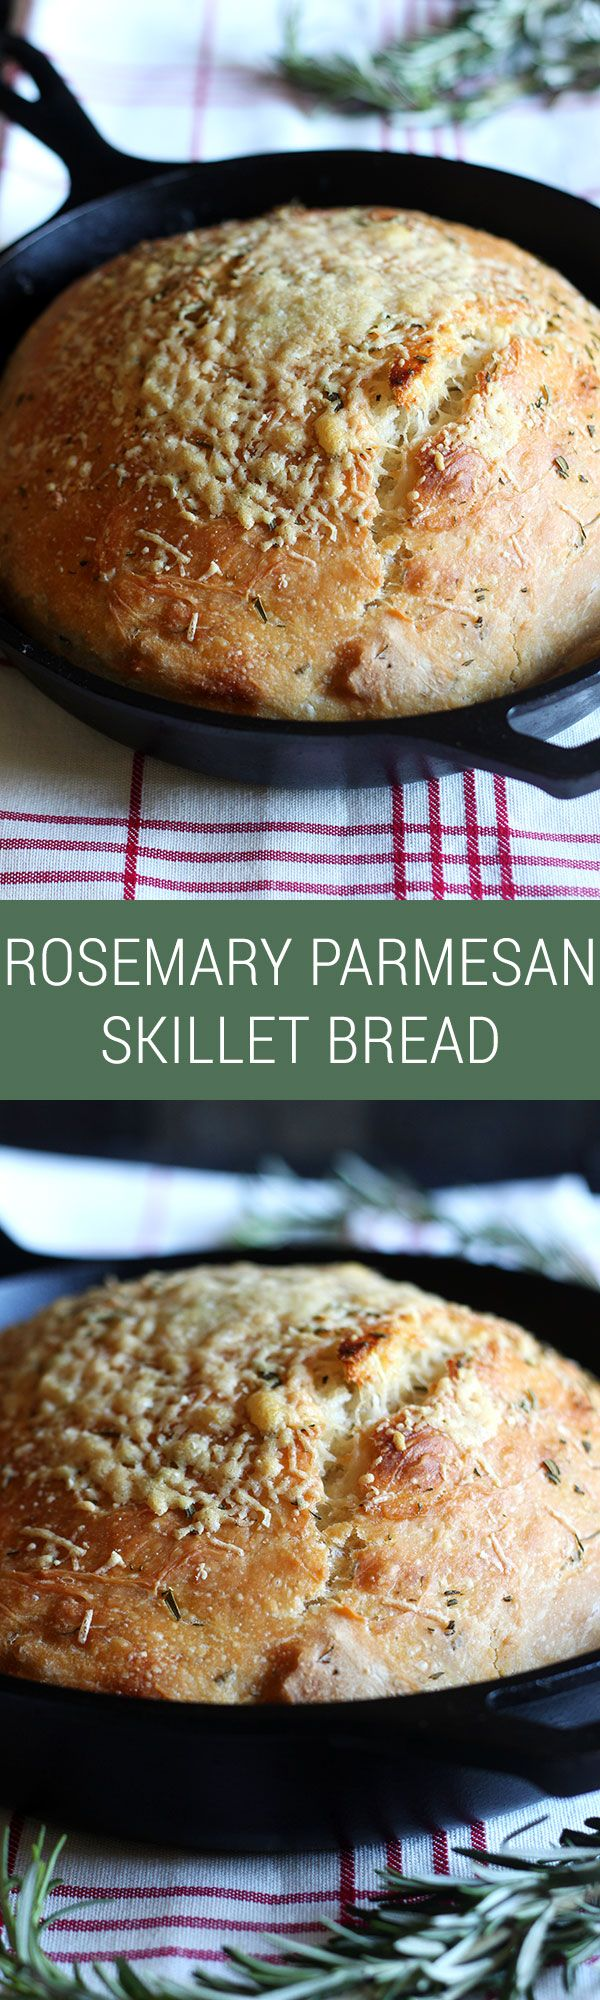 ***No Knead Rosemary Parmesan Skillet Bread ~ love that this is NO KNEAD!! Comes together in minutes and tastes SOOO good. Crispy crust too.